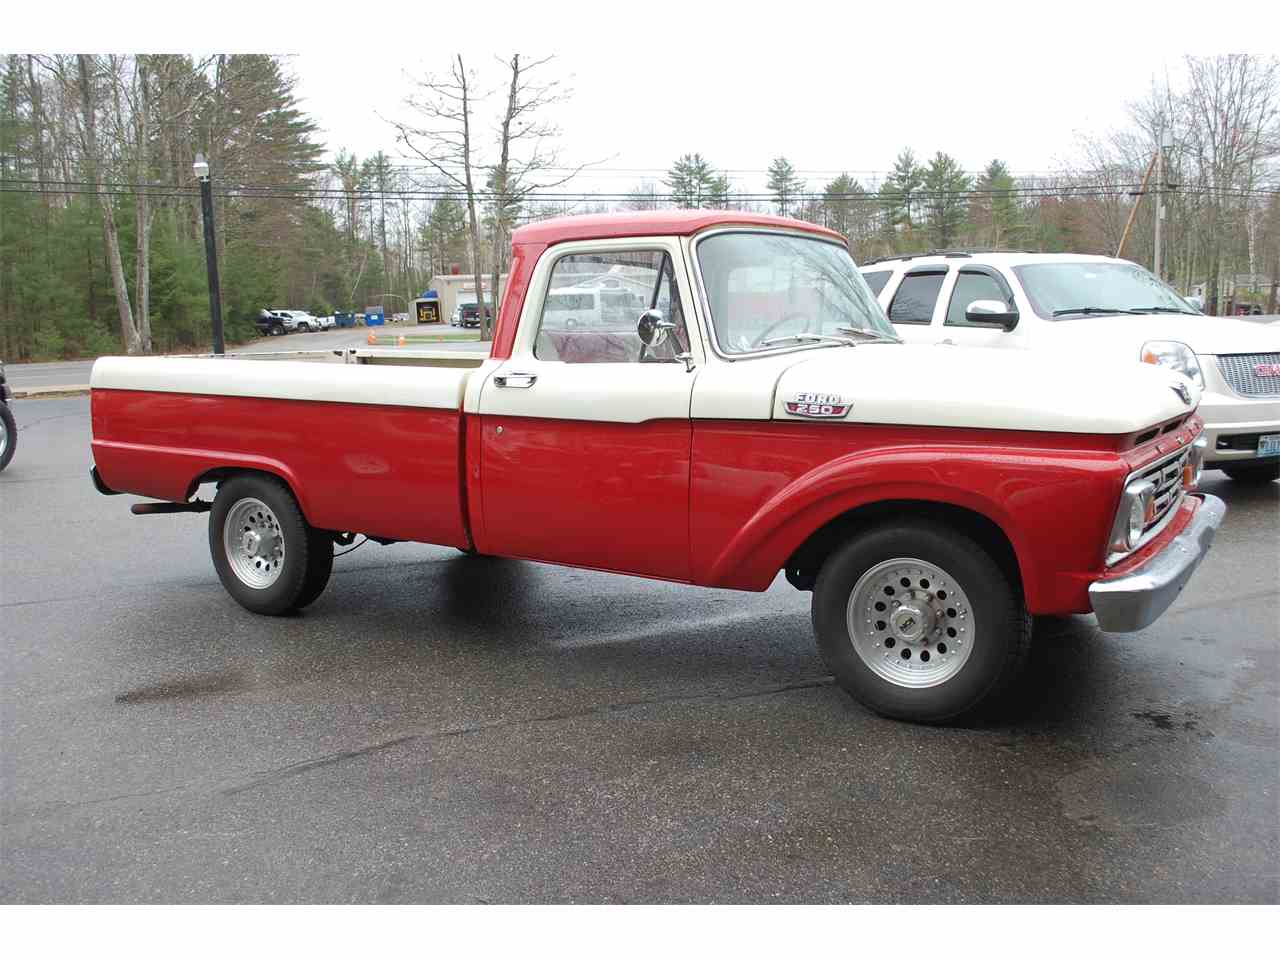 Luxury Old Trucks For Sale In Maine Pattern - Classic Cars Ideas ...